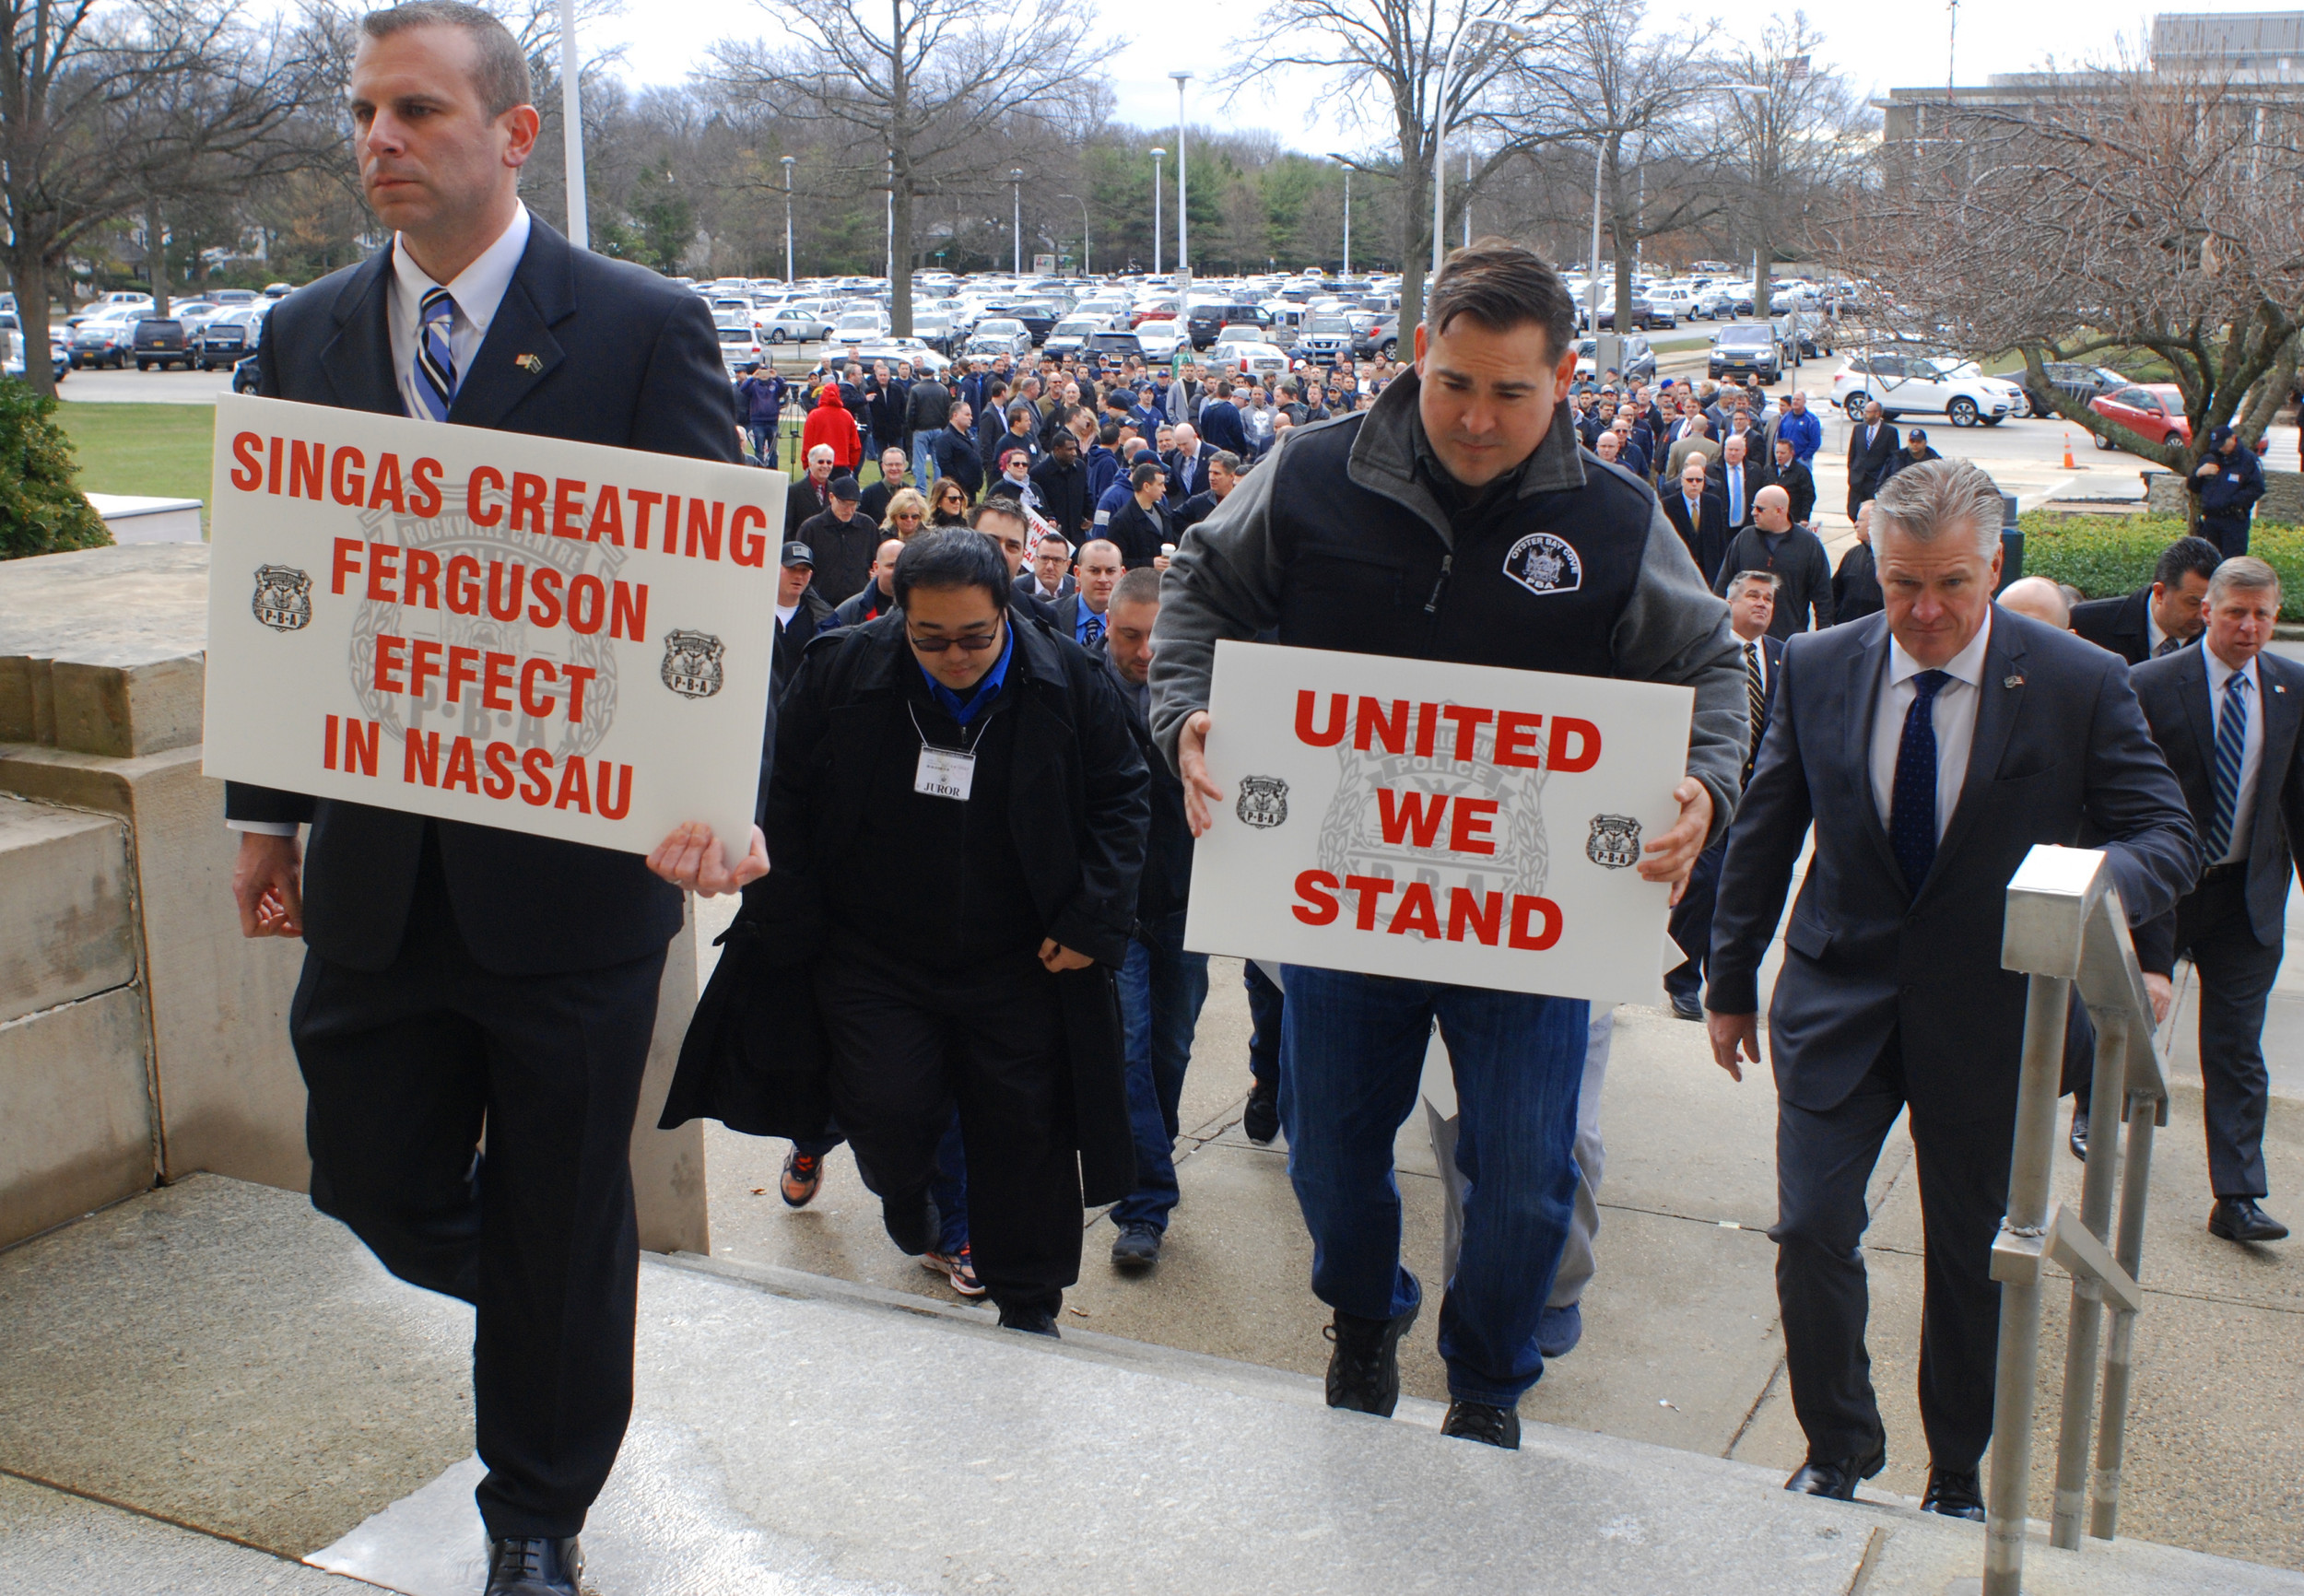 Federico's supporters entered the Nassau County Courthouse on Wednesday to protest felony assault charges against him.